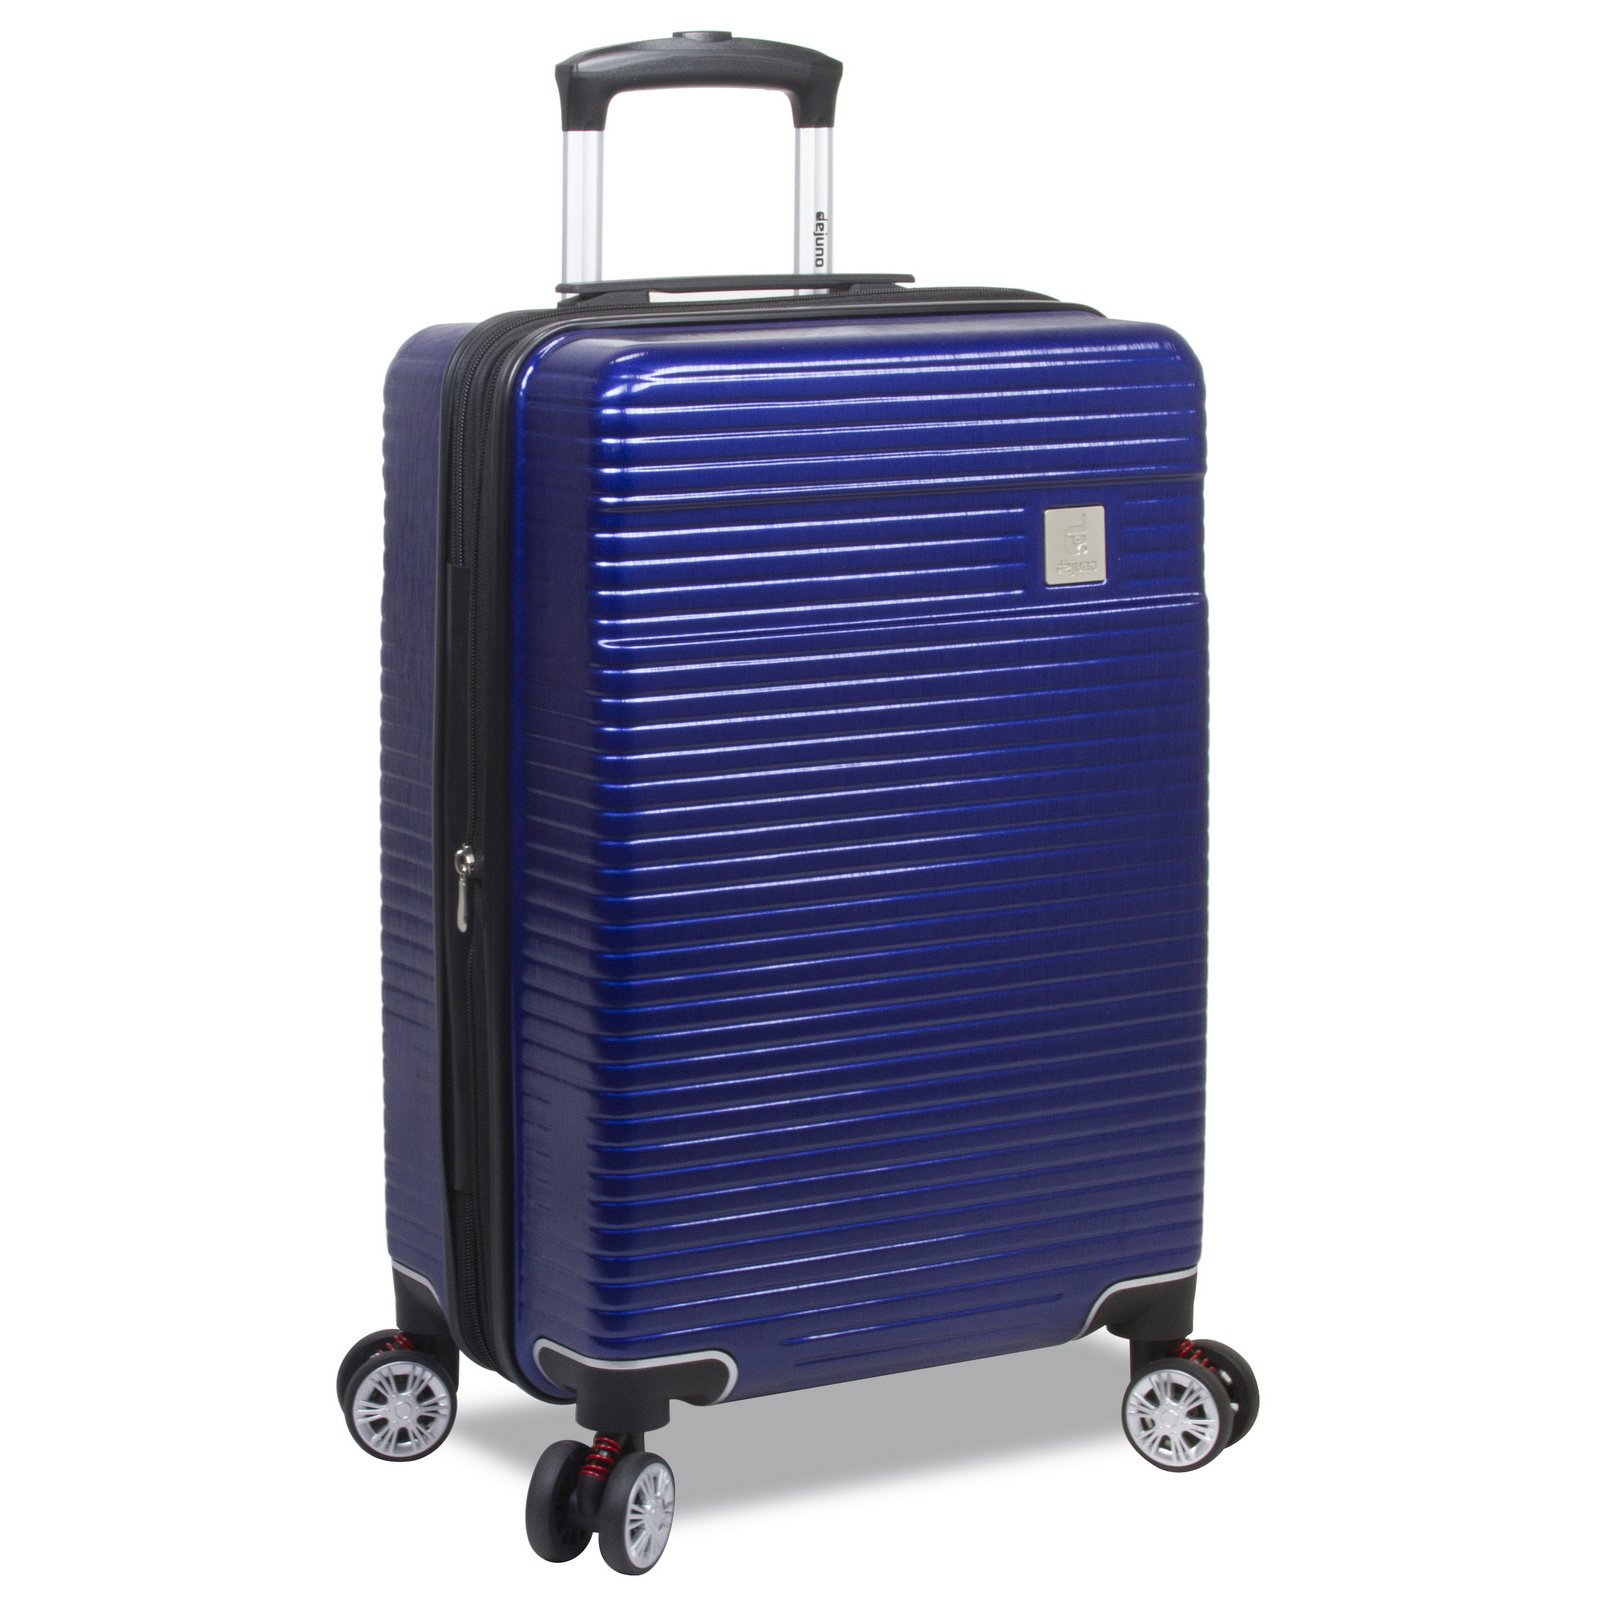 Dejuno Ashford 3-PC Hardside Spinner TSA Combination Lock Luggage Set - Navy by Dejuno (Image #2)